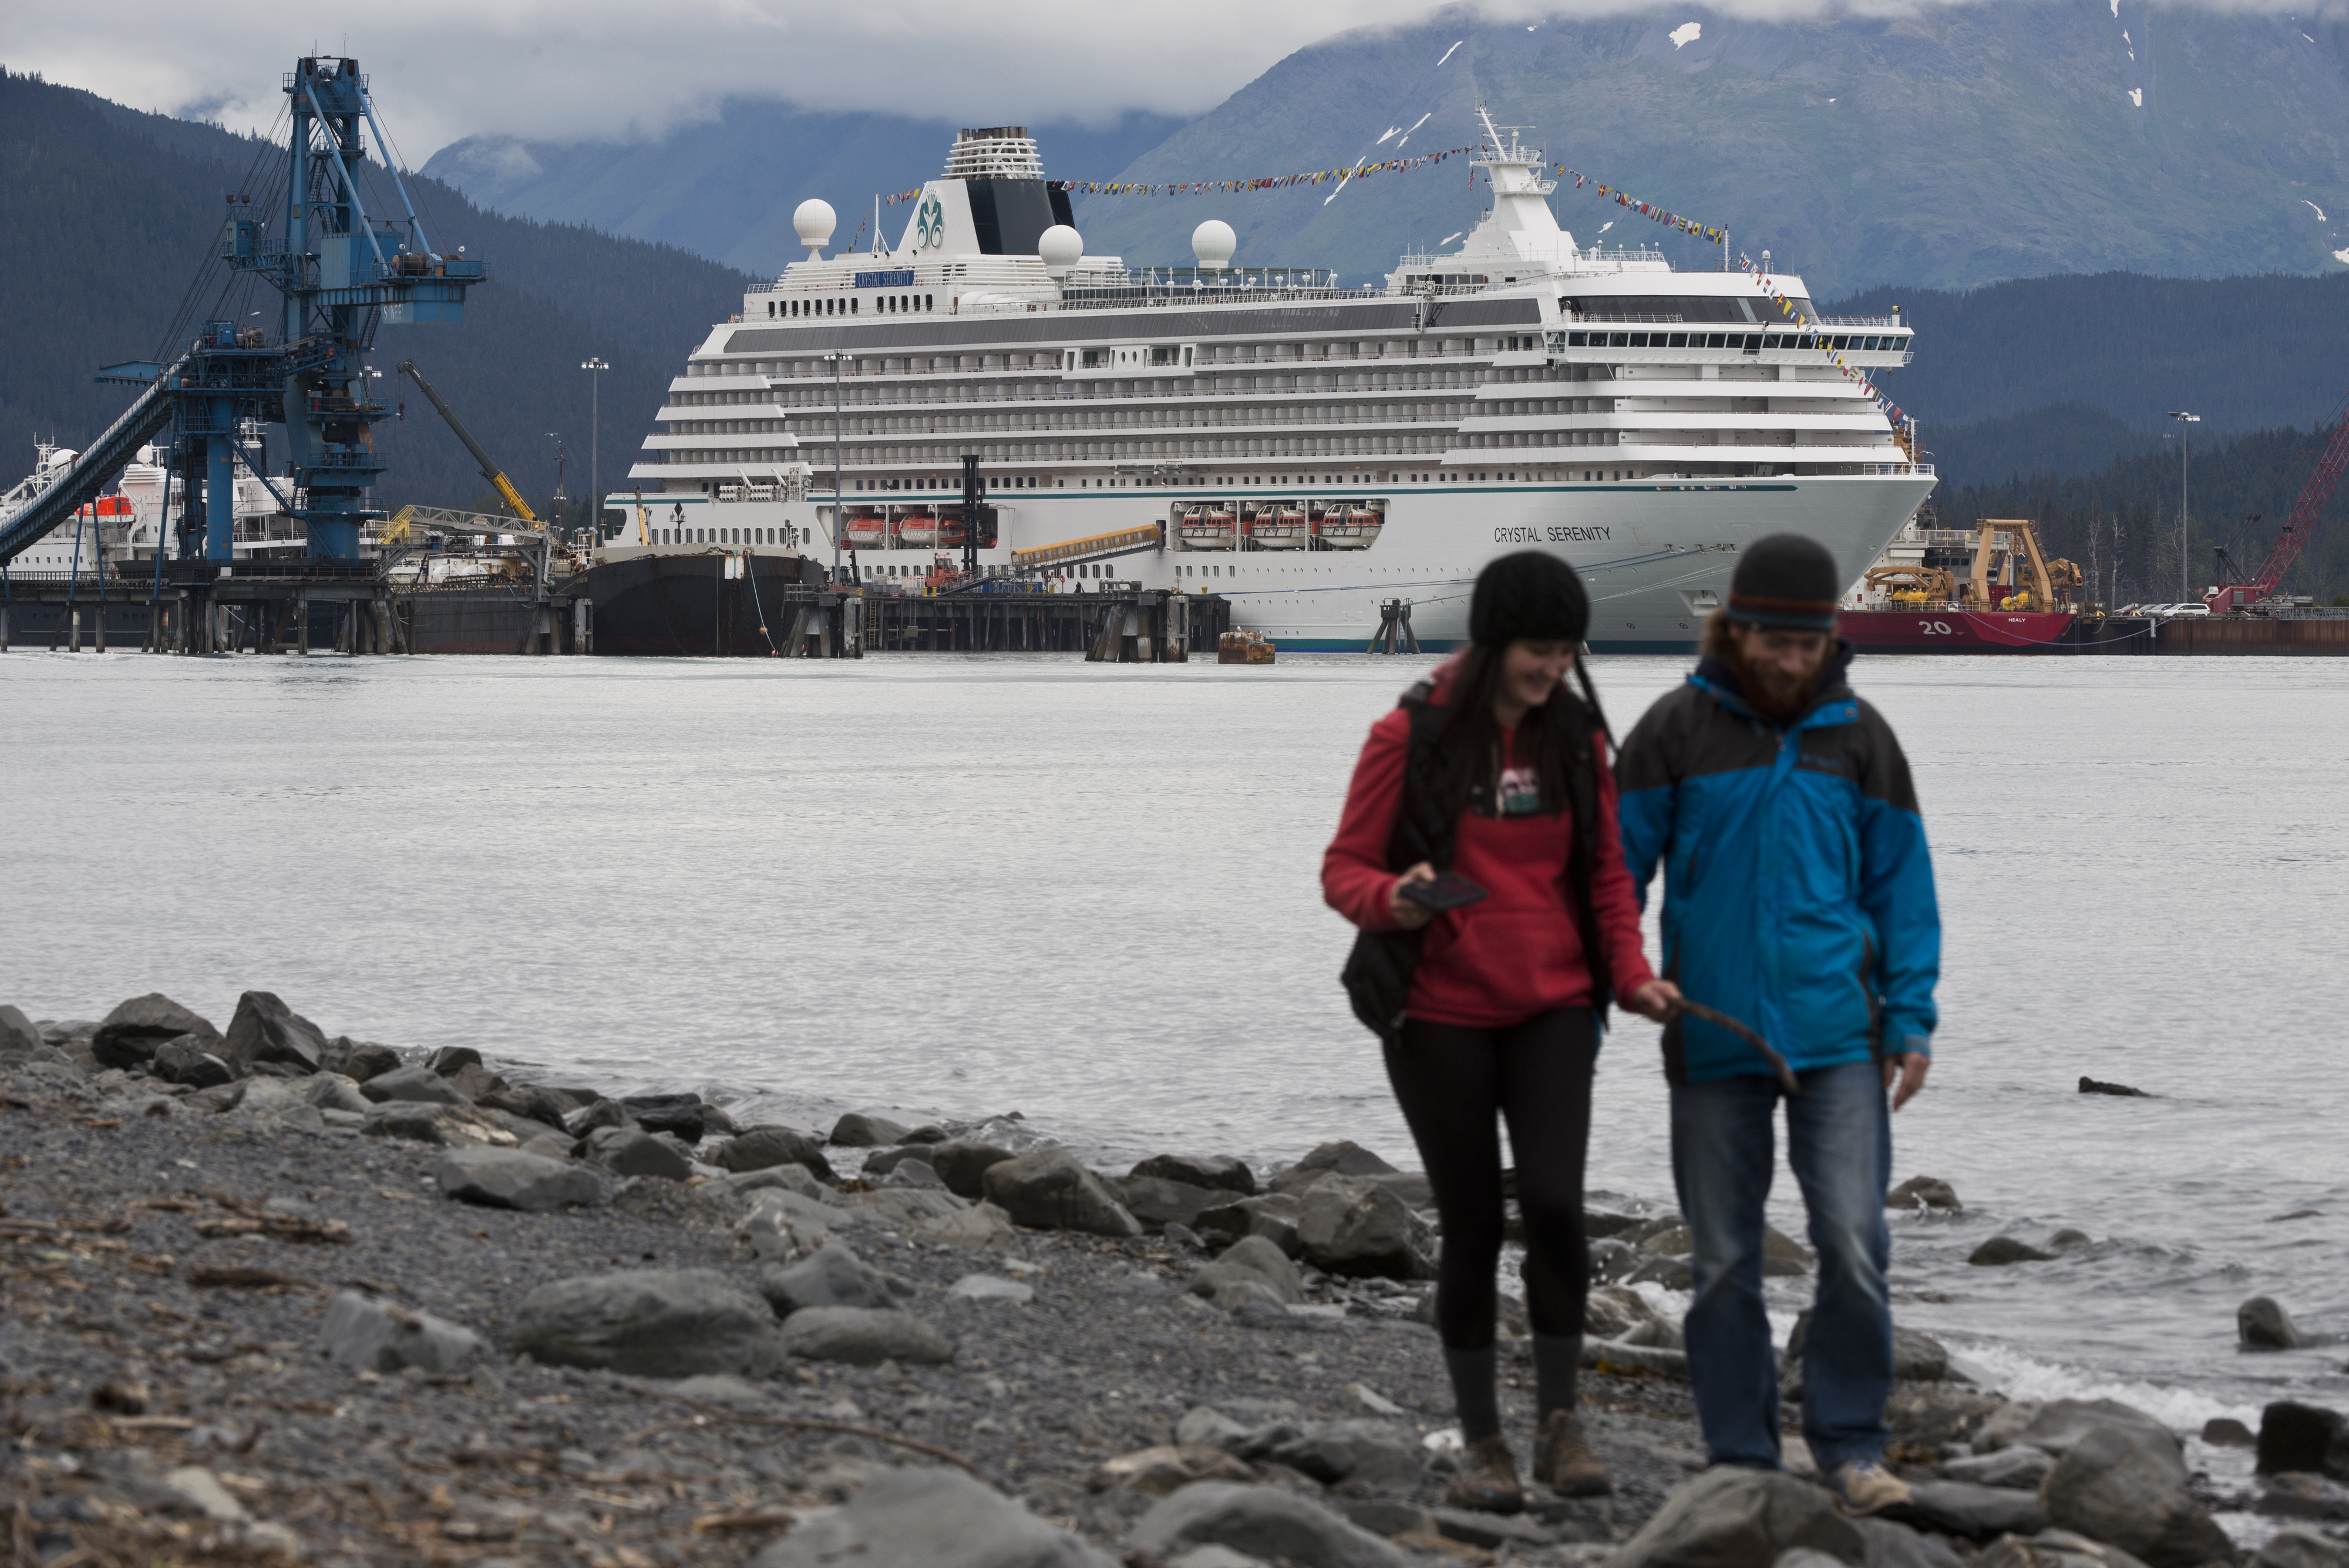 Shawna Nelson, left, and Chad Kaina walk the Resurrection Bay shoreline in Seward. The luxury cruise liner Crystal Serenity is docked in the distance. The Crystal Cruises vessel is on its way to the New York City via the Northwest Passage. The 32-day trip will travel north through the Bering Straight and along the Arctic coast of Alaska and Canada before reaching the Atlantic Ocean. It was scheduled to depart Seward in the early evening on Tuesday, August 16, 2016. The 820-foot long ship can carry 1,070 passengers. Prices for the journey ranged from nearly $22,000 to $120,000. (Marc Lester / Alaska Dispatch News)